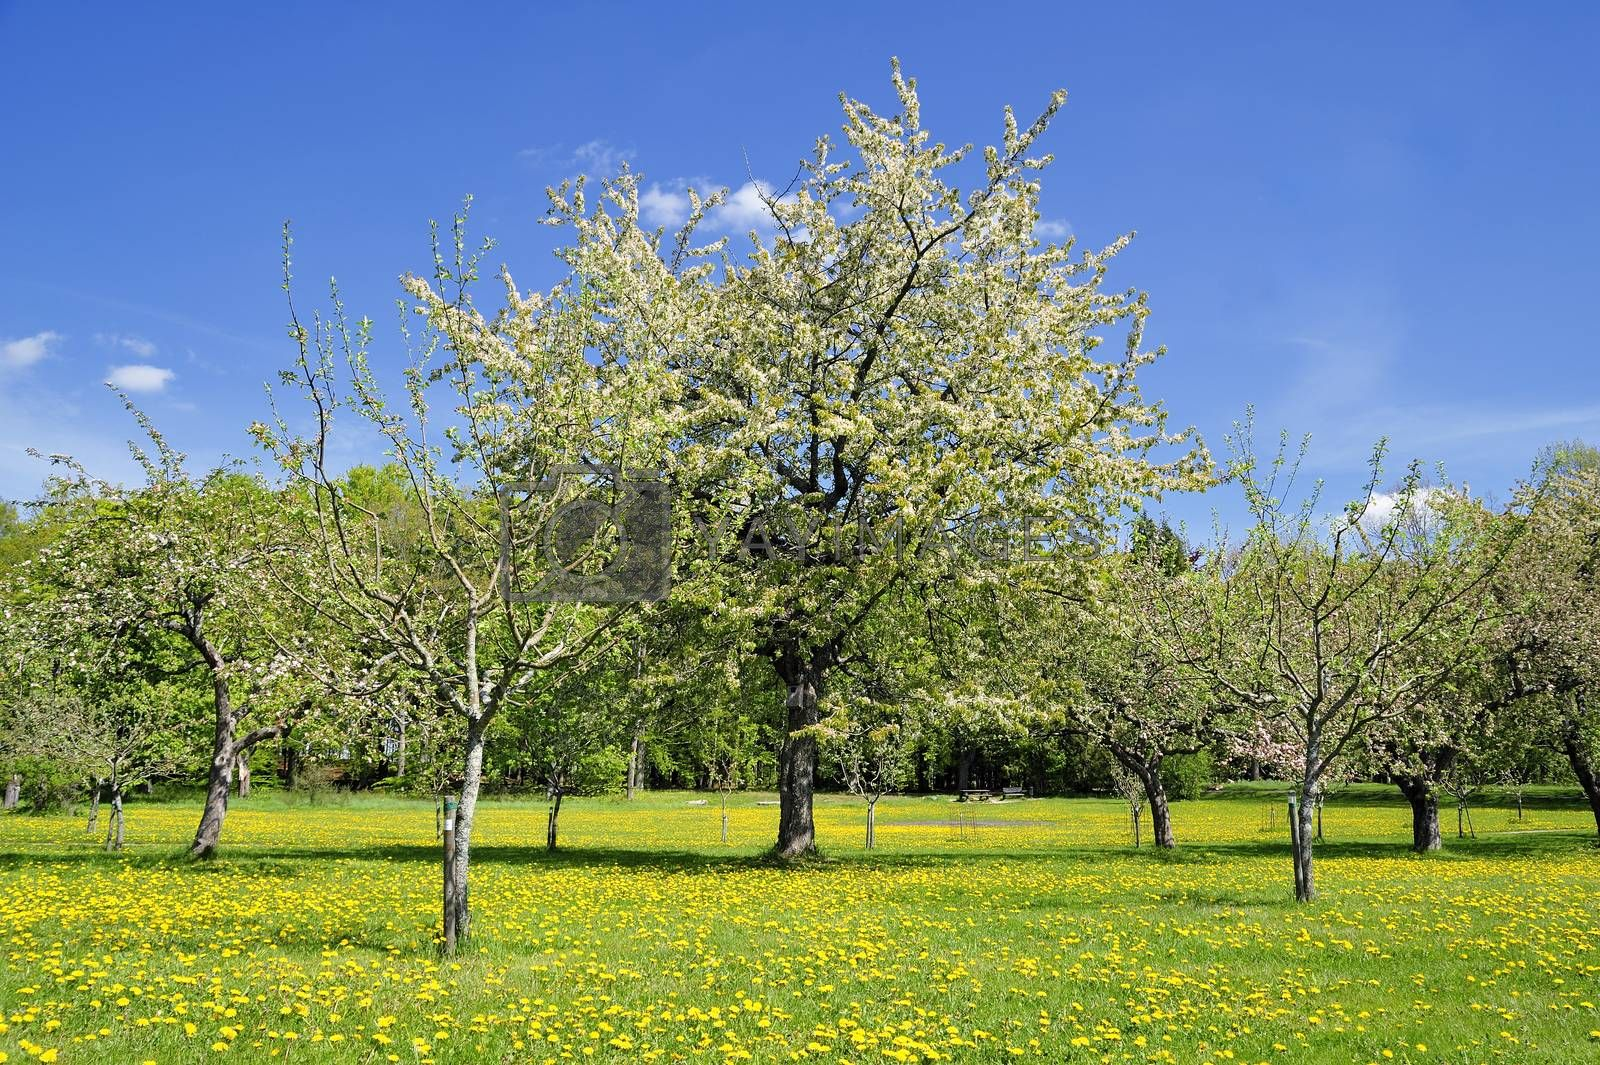 Apples on tree in Swedish orchard.